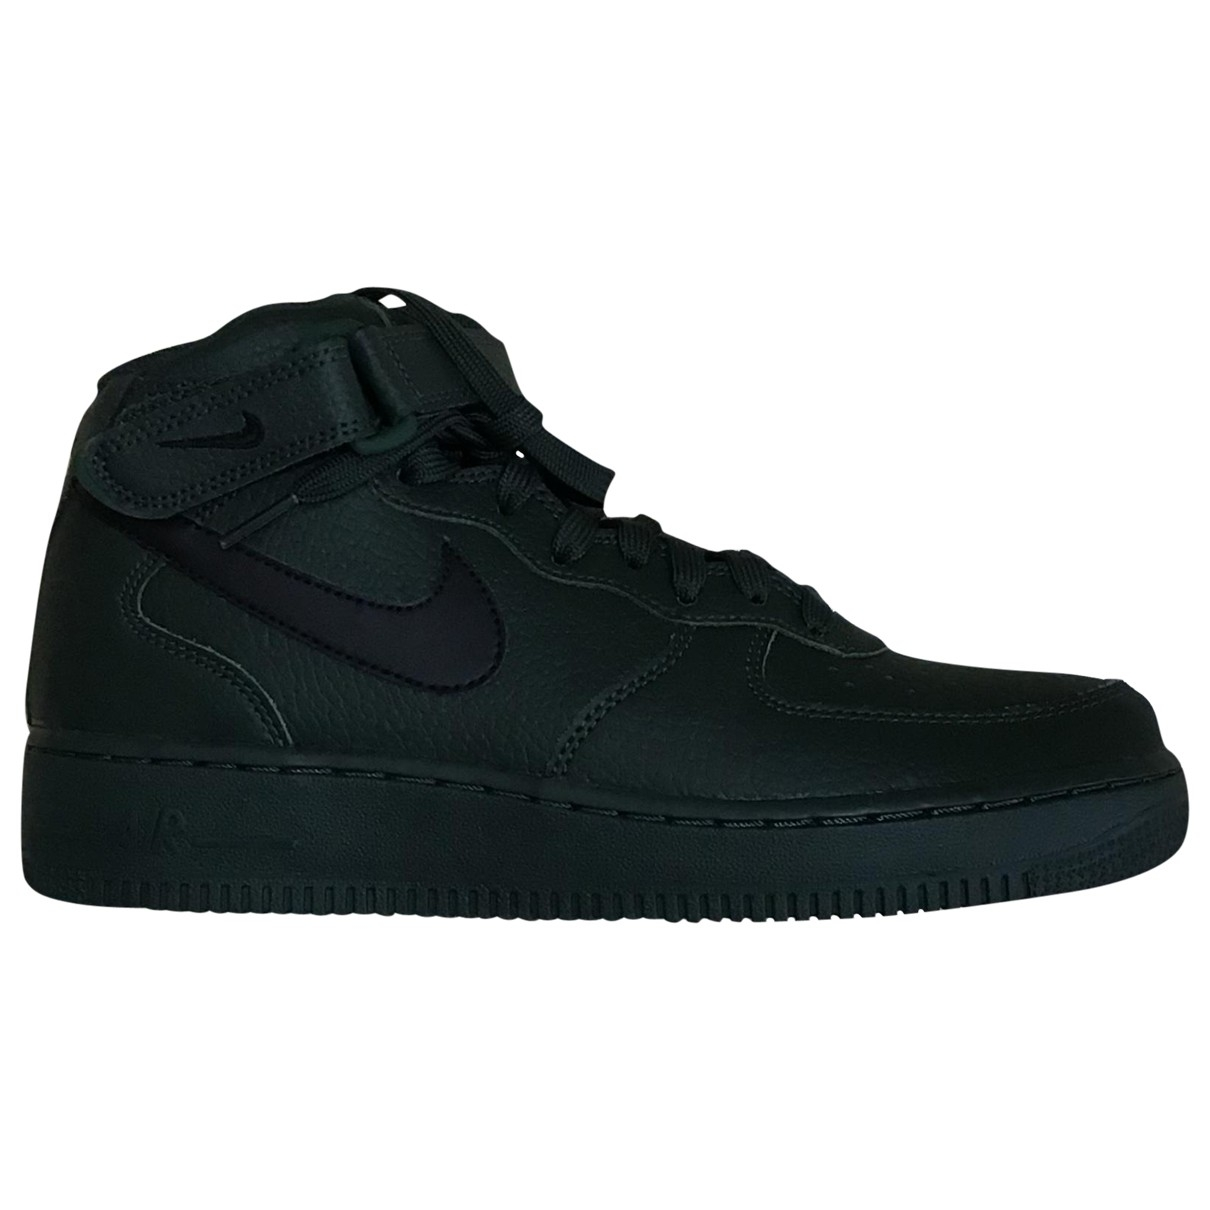 Nike Air Force 1 Green Leather Trainers for Men 40 EU